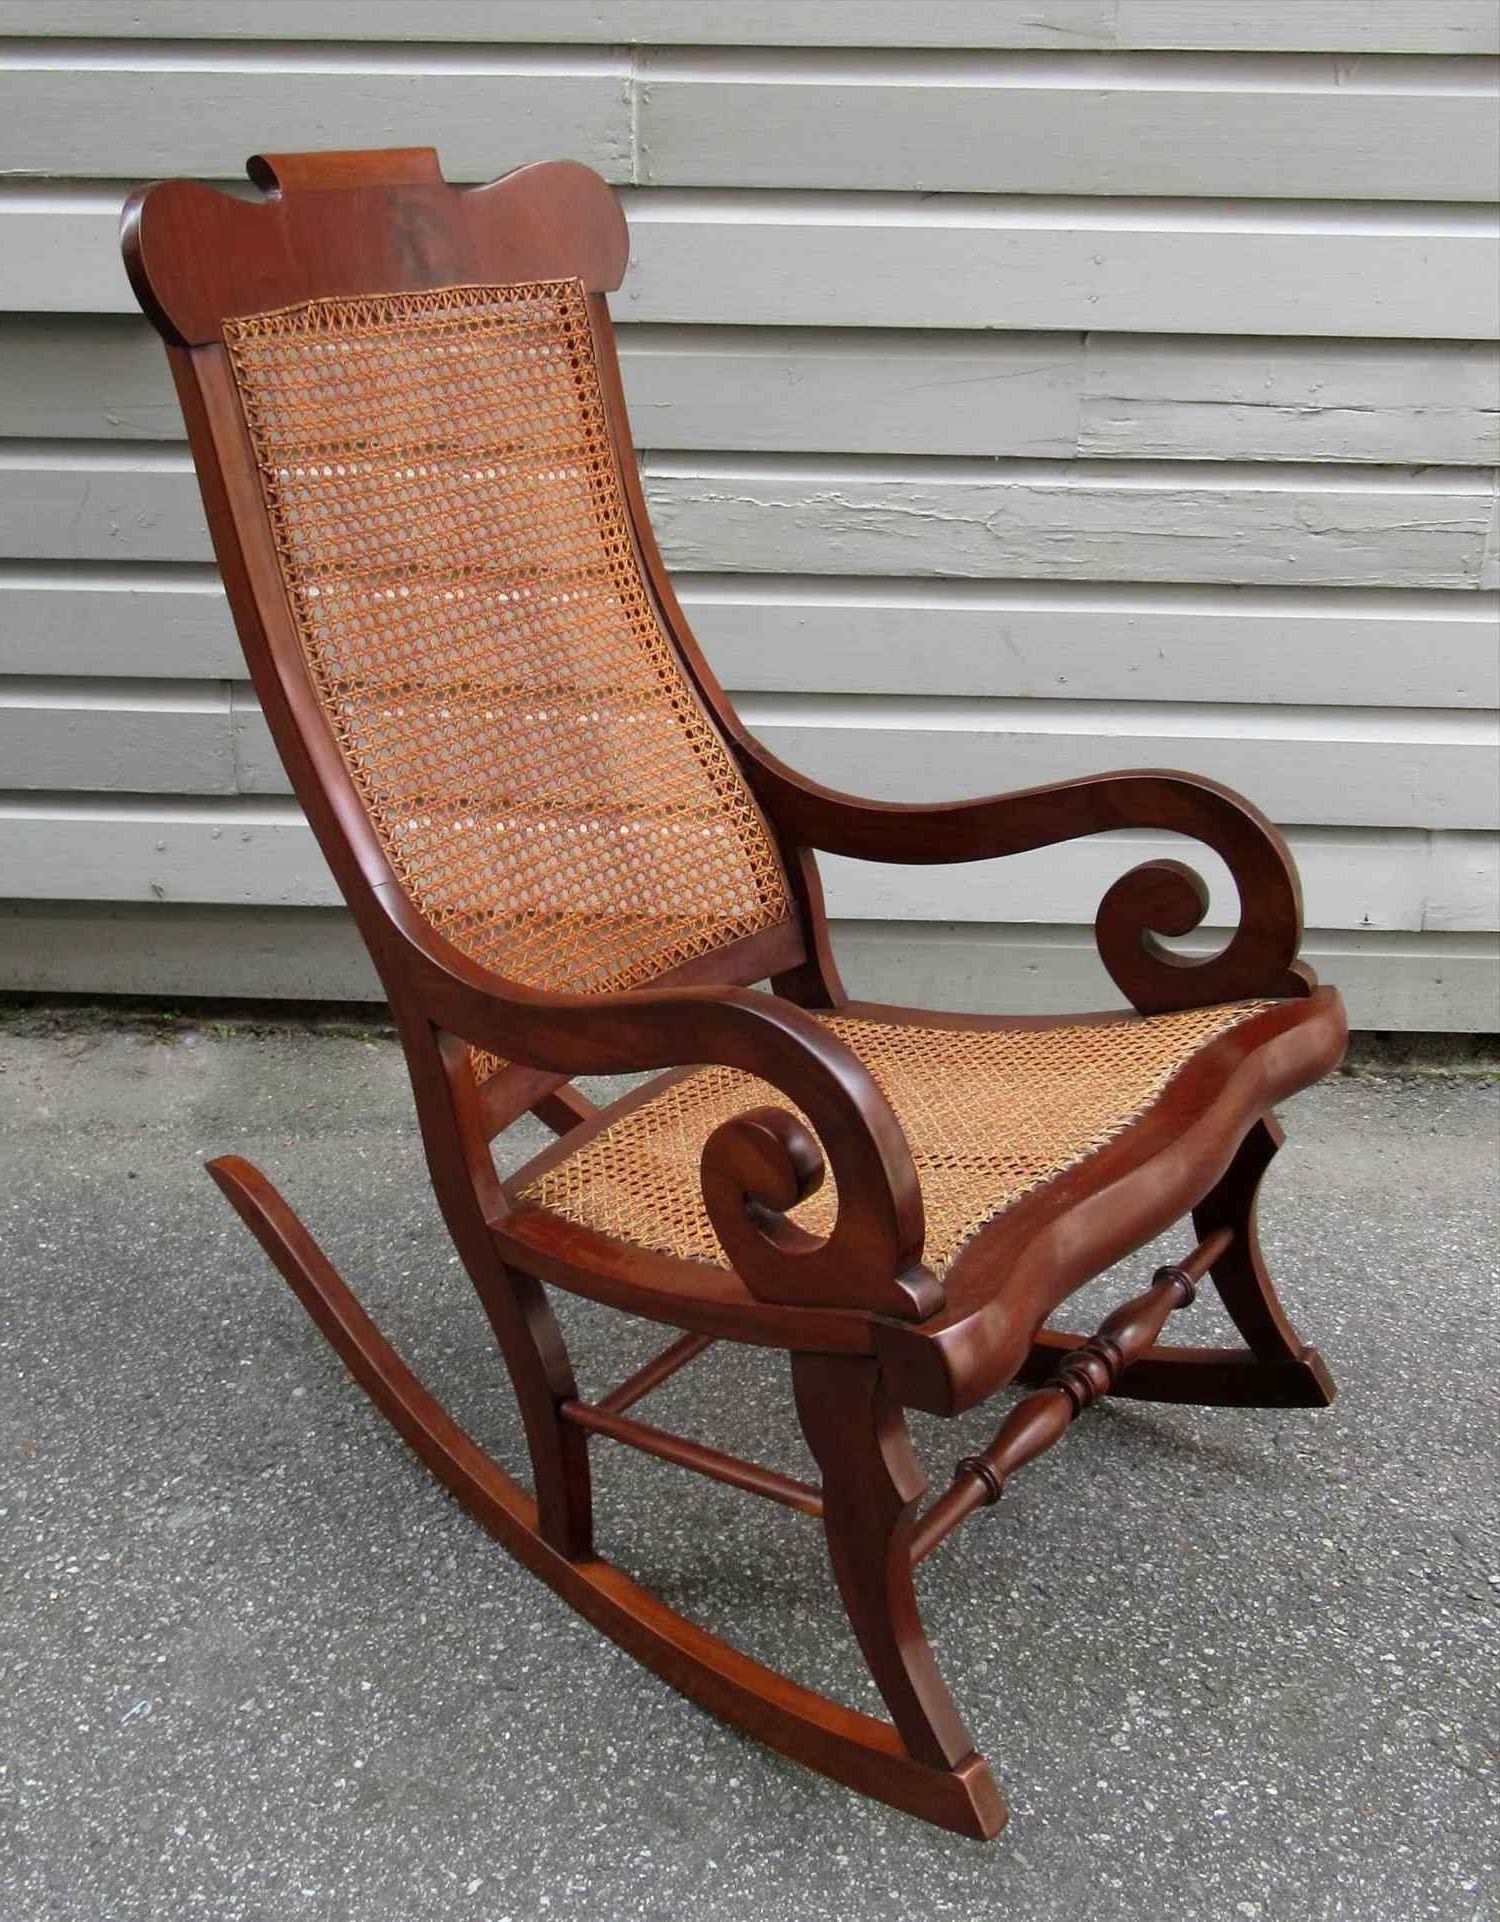 Merveilleux Antique Wicker Rocking Chairs Inside Most Recent Antique Cane Rocking Chair  For Sale U2013 Image Antique